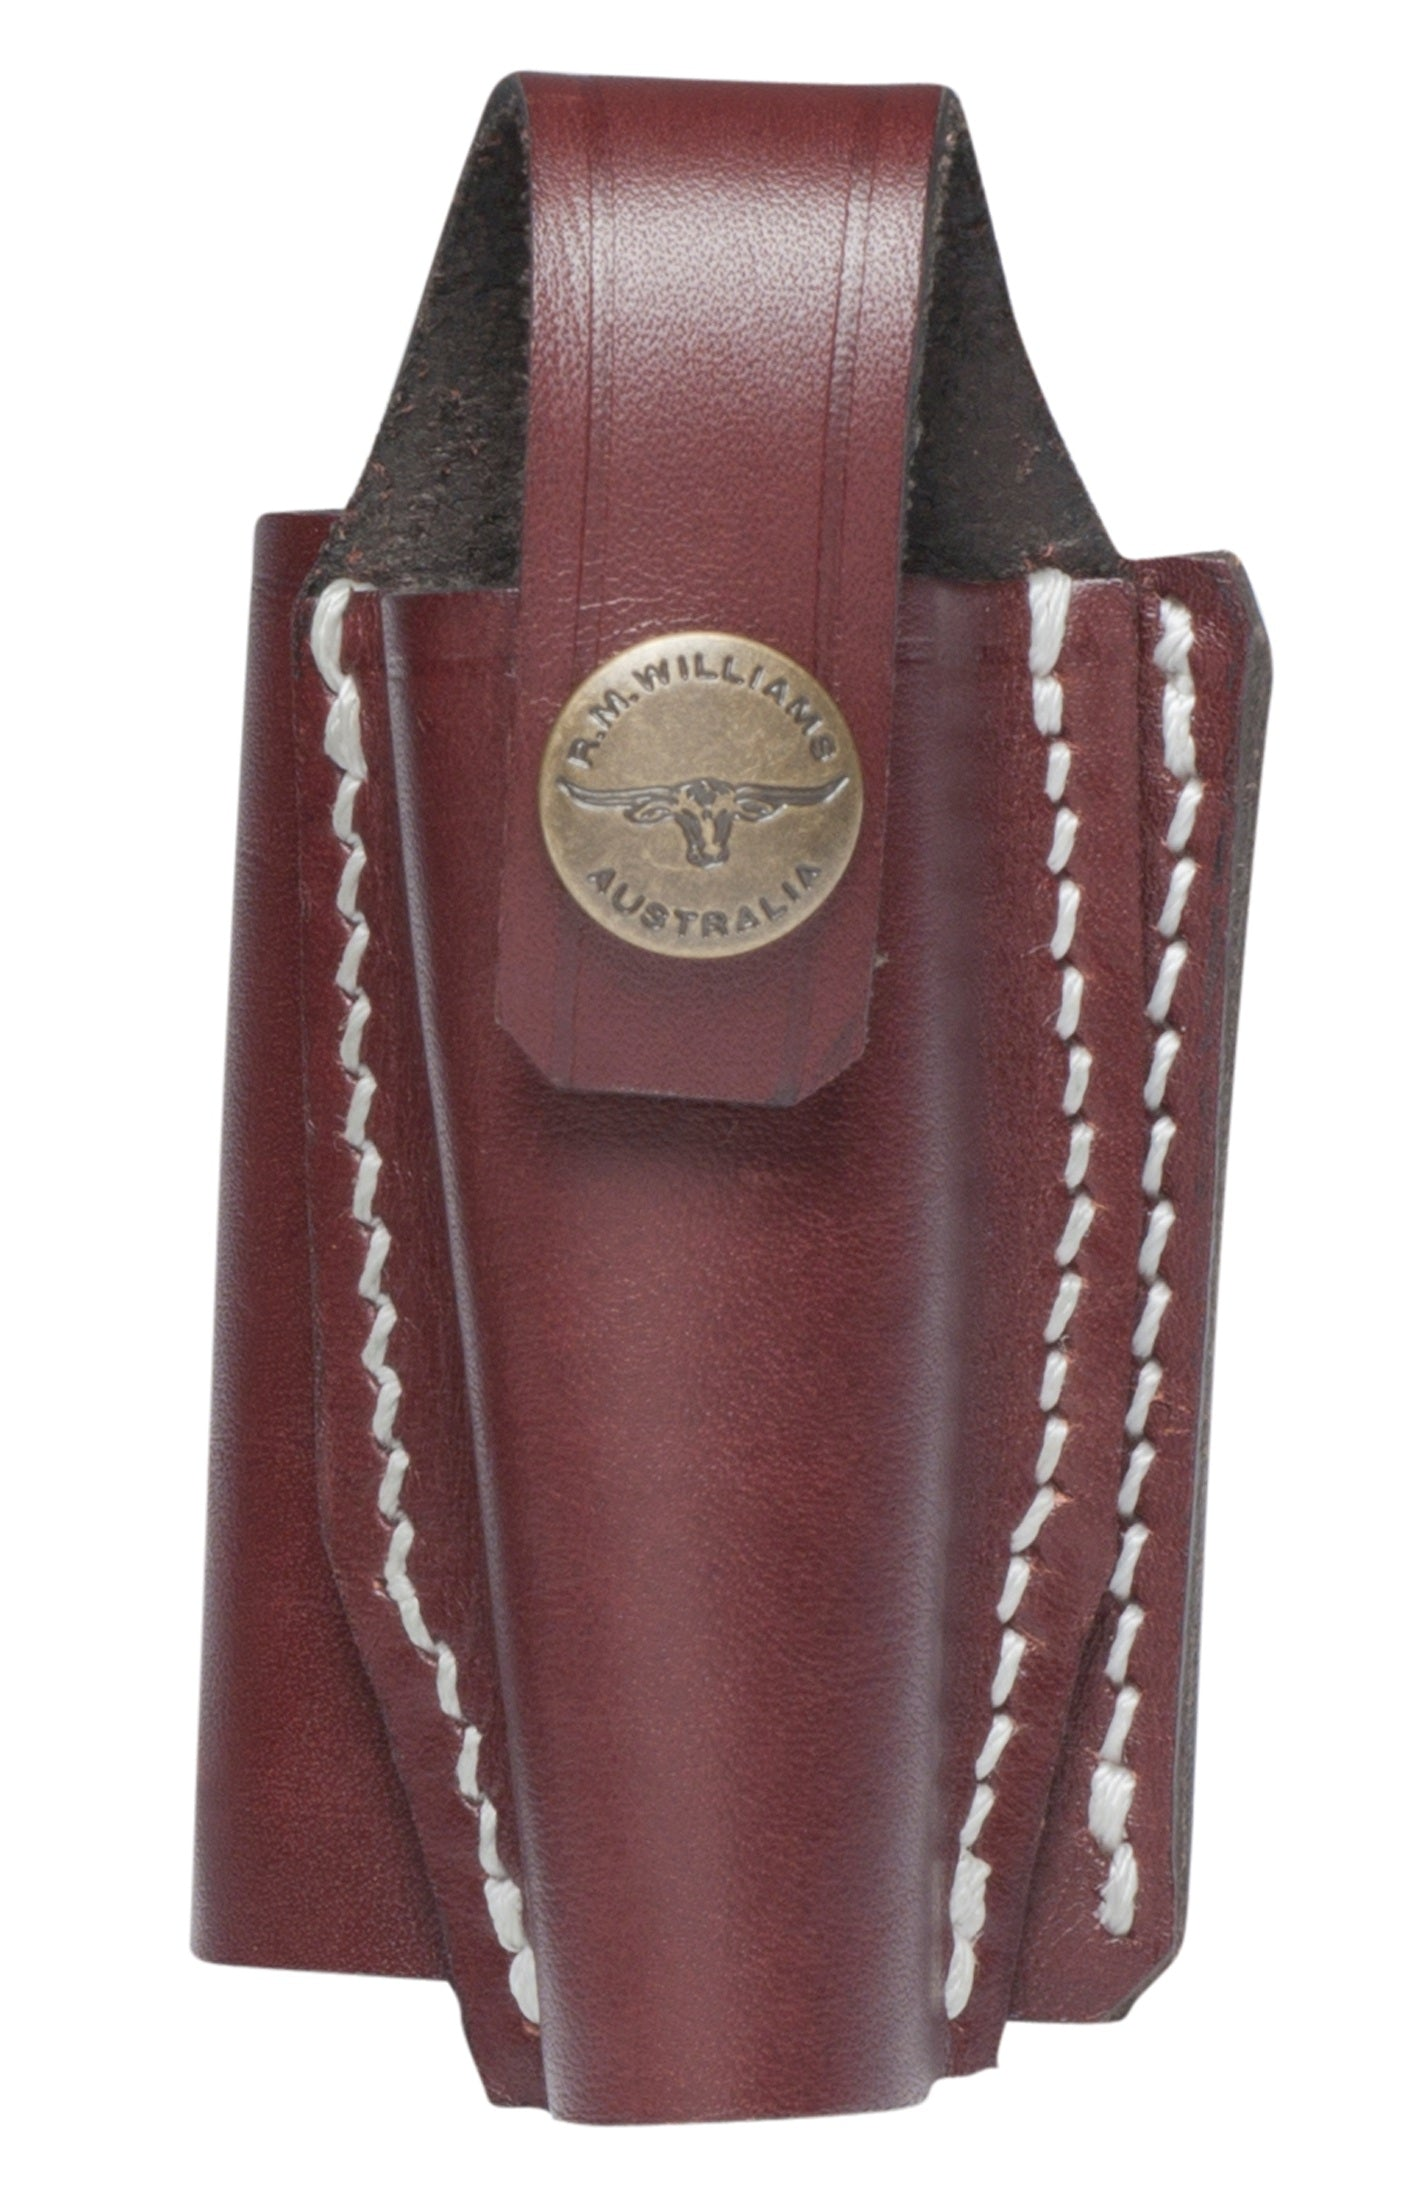 RMW Knife Pouch With Stud Closure